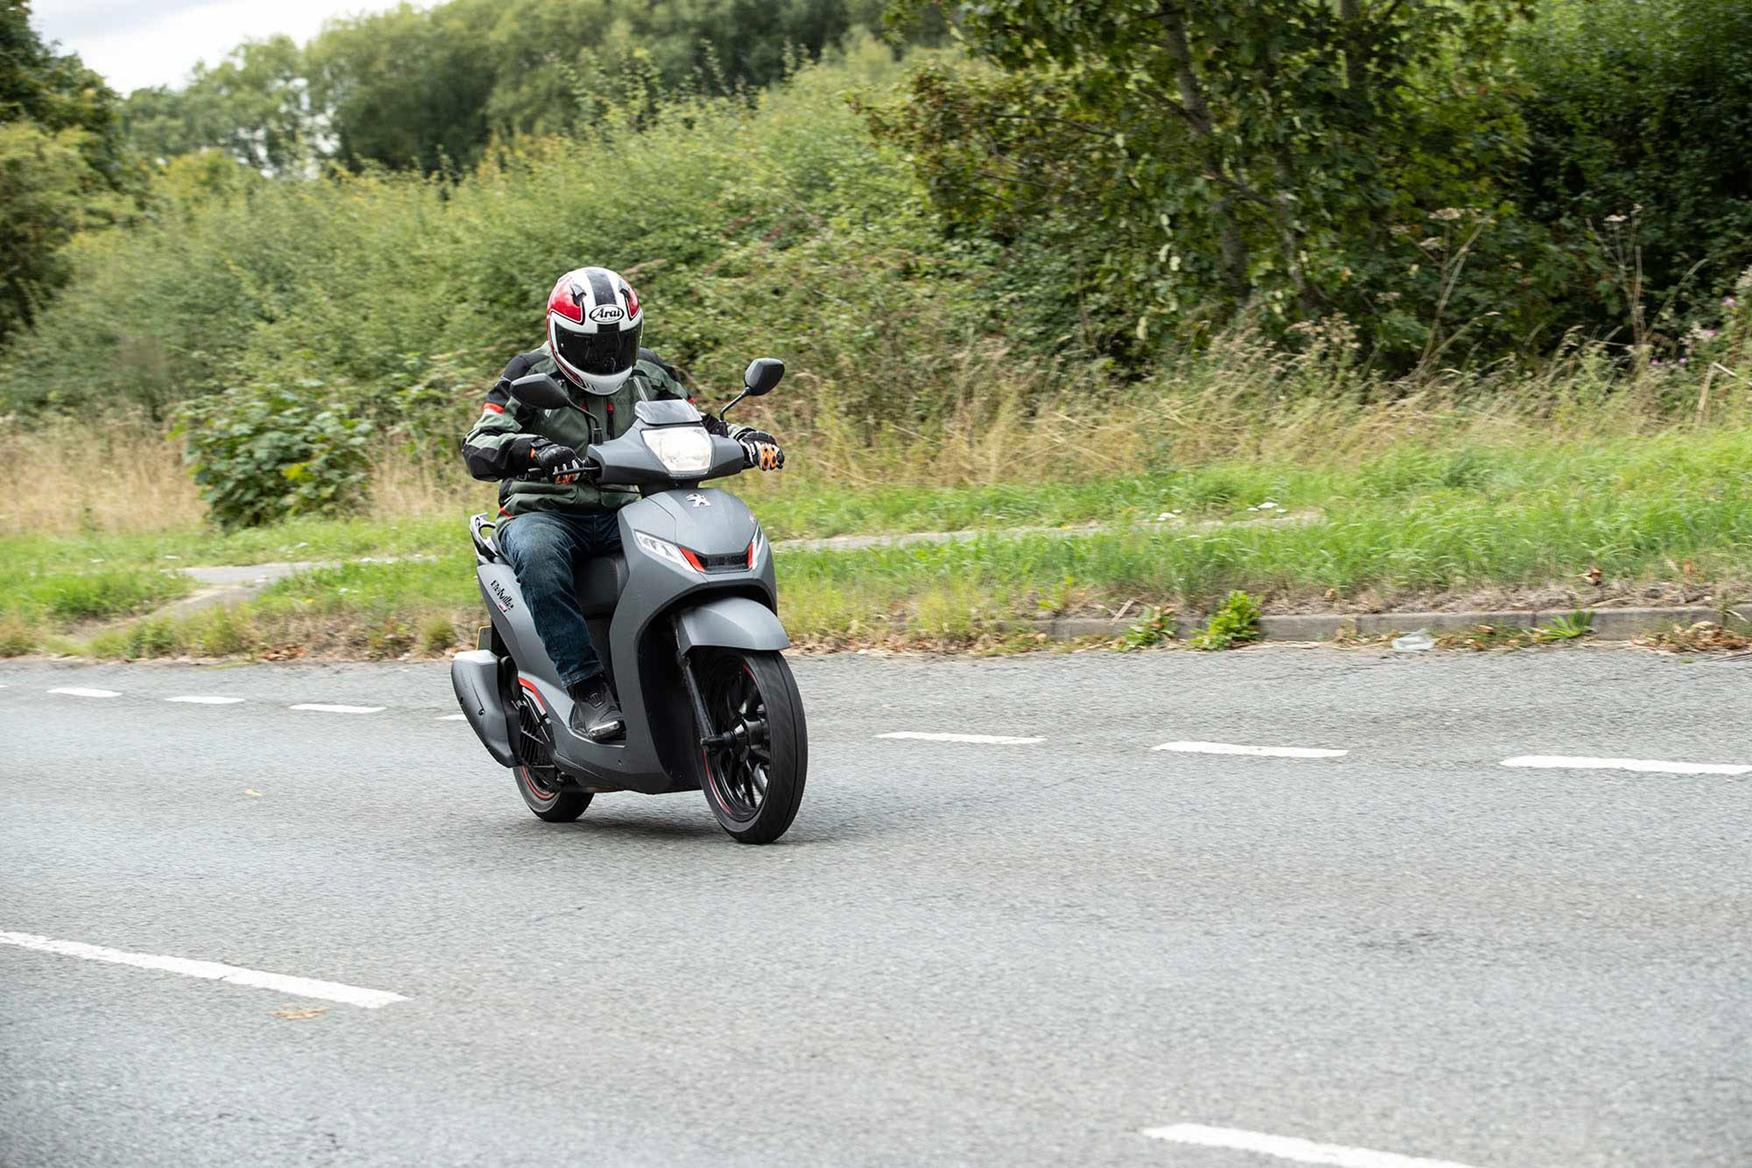 MCN's Dan tests the 125 scoot